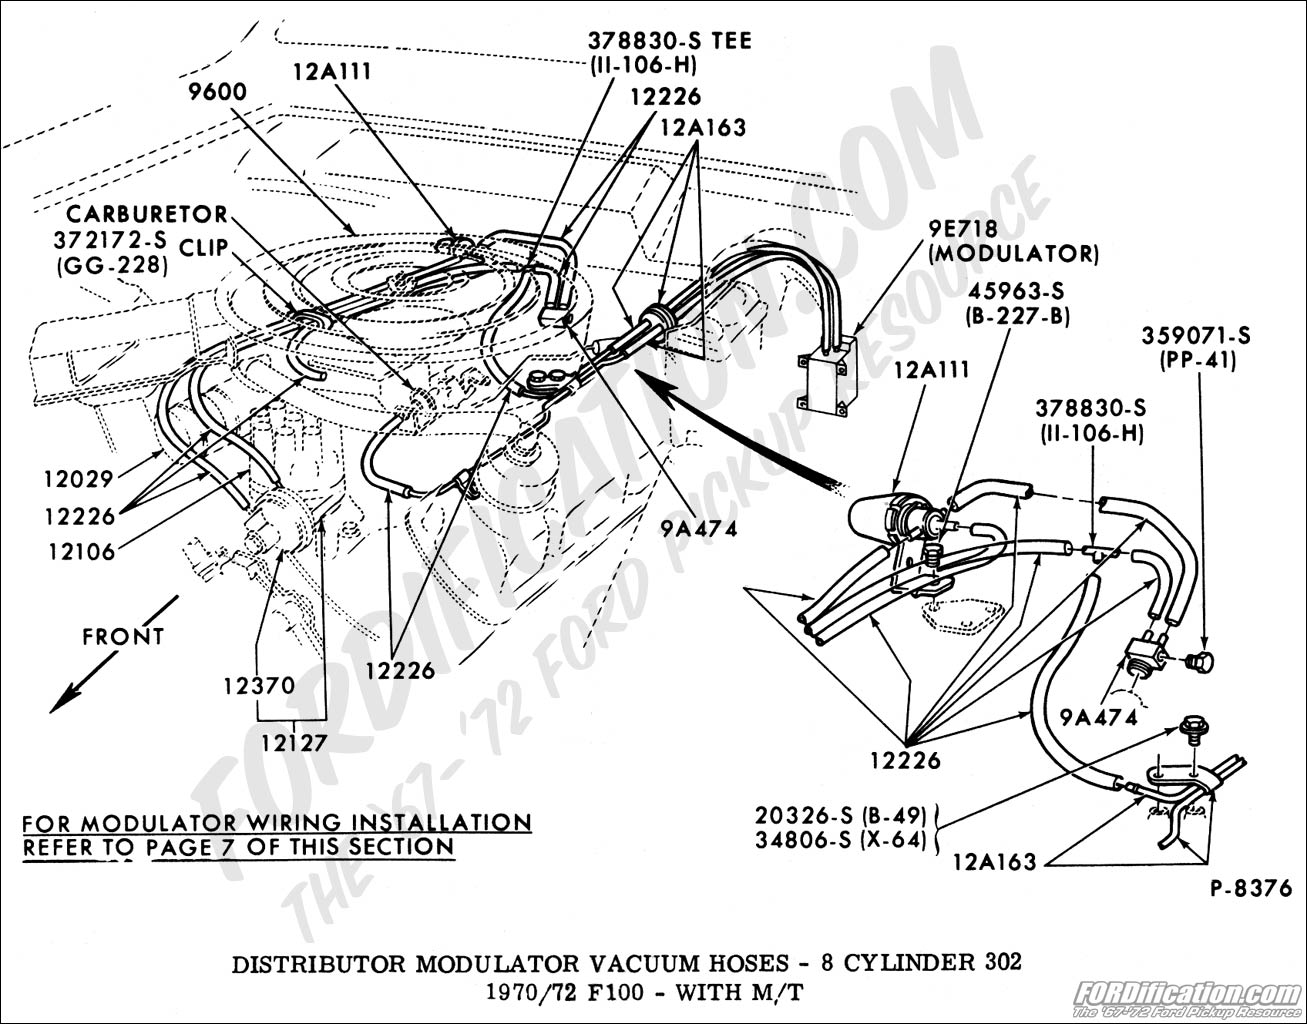 1984 ford f150 vacuum hose diagram wedocable schematic library Auto Wiring Diagram Library 85 ford f 250 460 wiring diagram wiring library